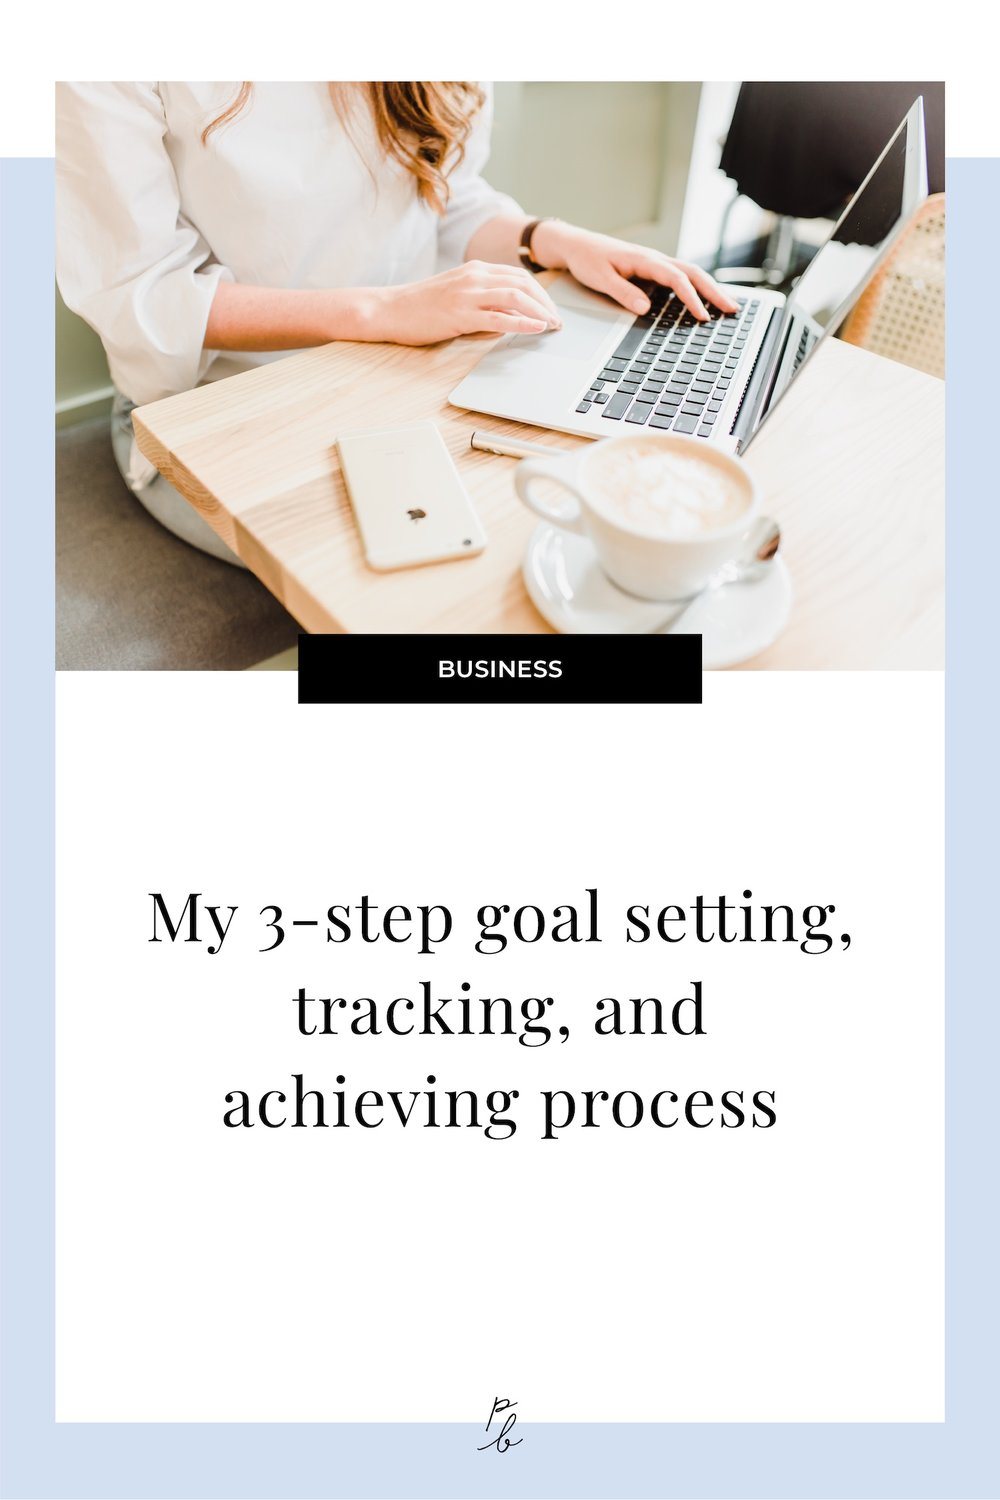 My 3-step goal setting, tracking, and achieving process.jpg